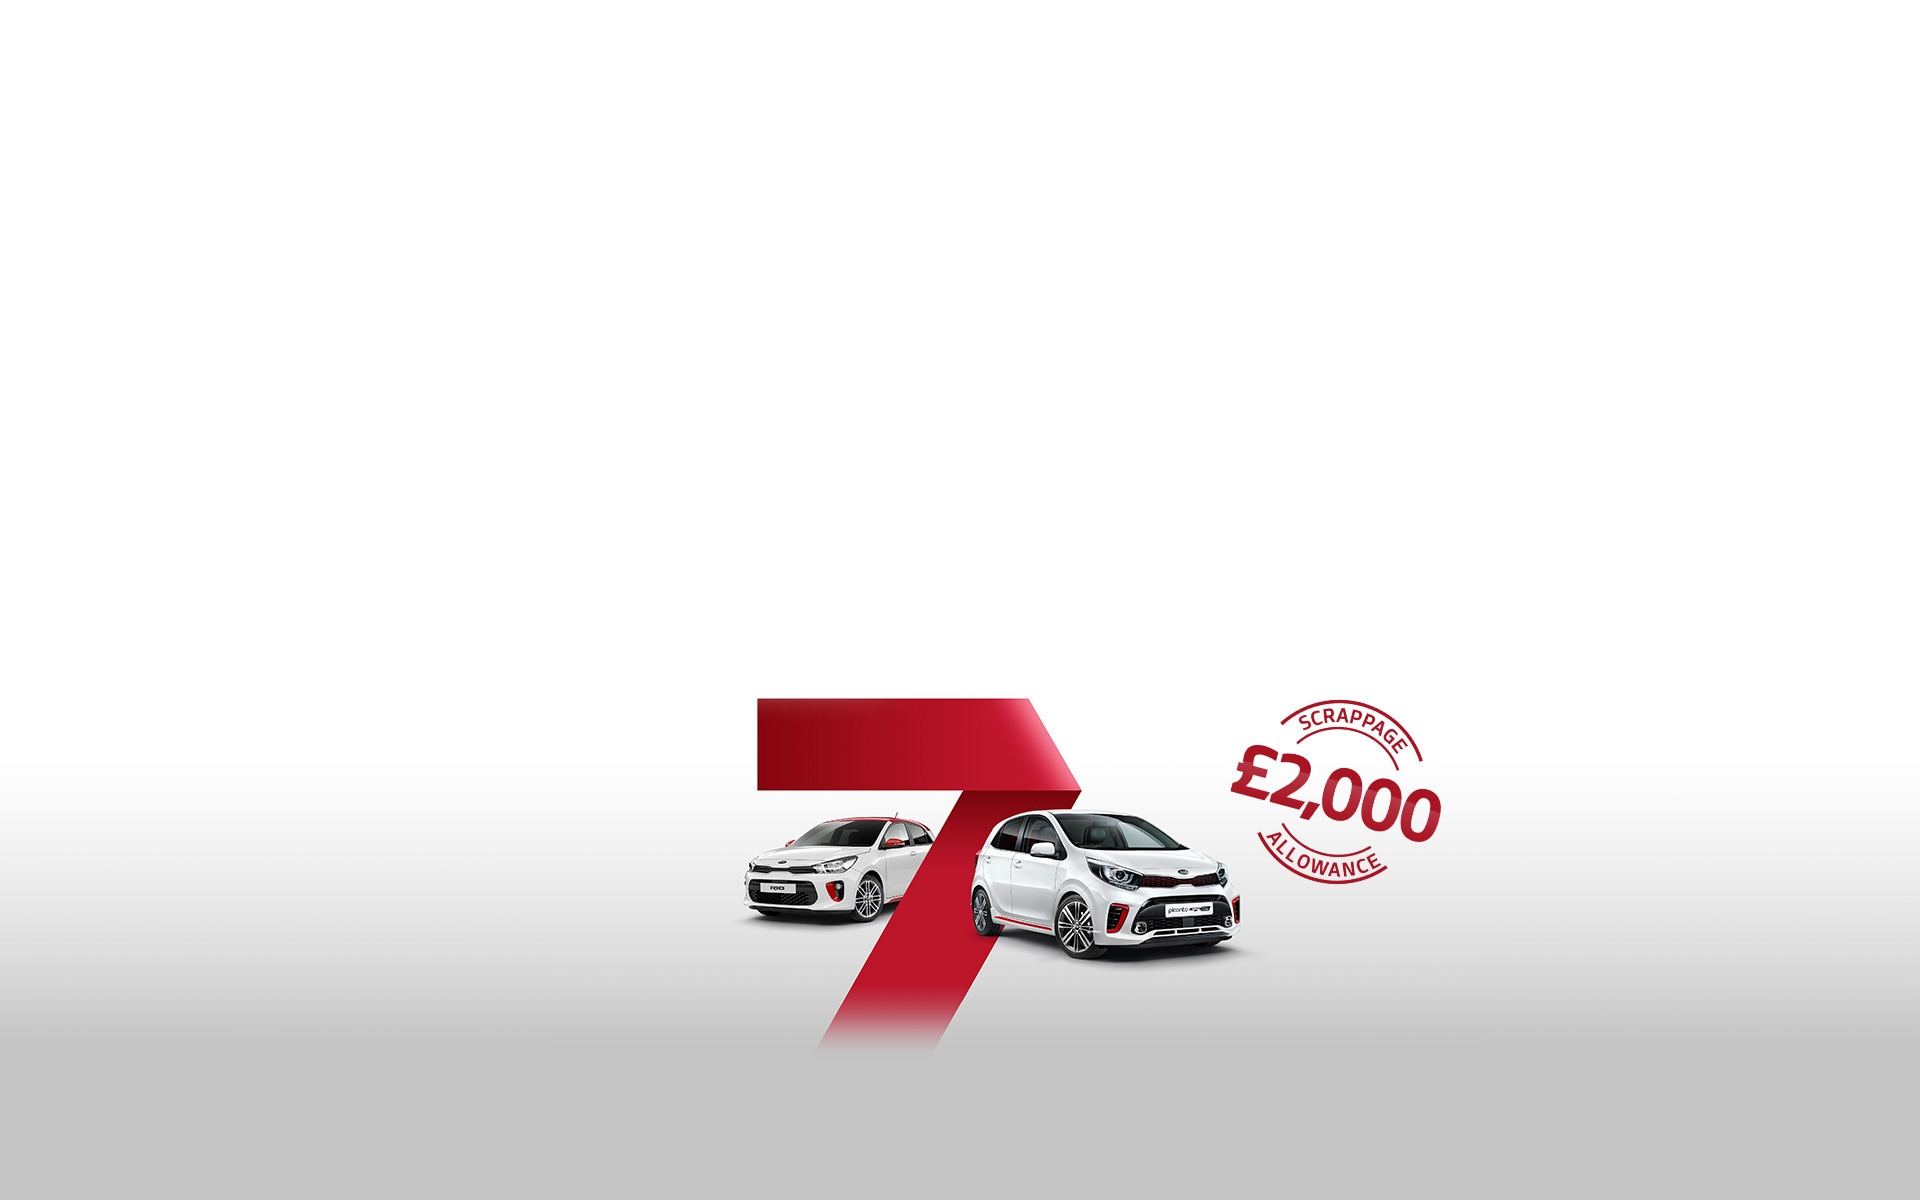 The Kia Scrappage Scheme